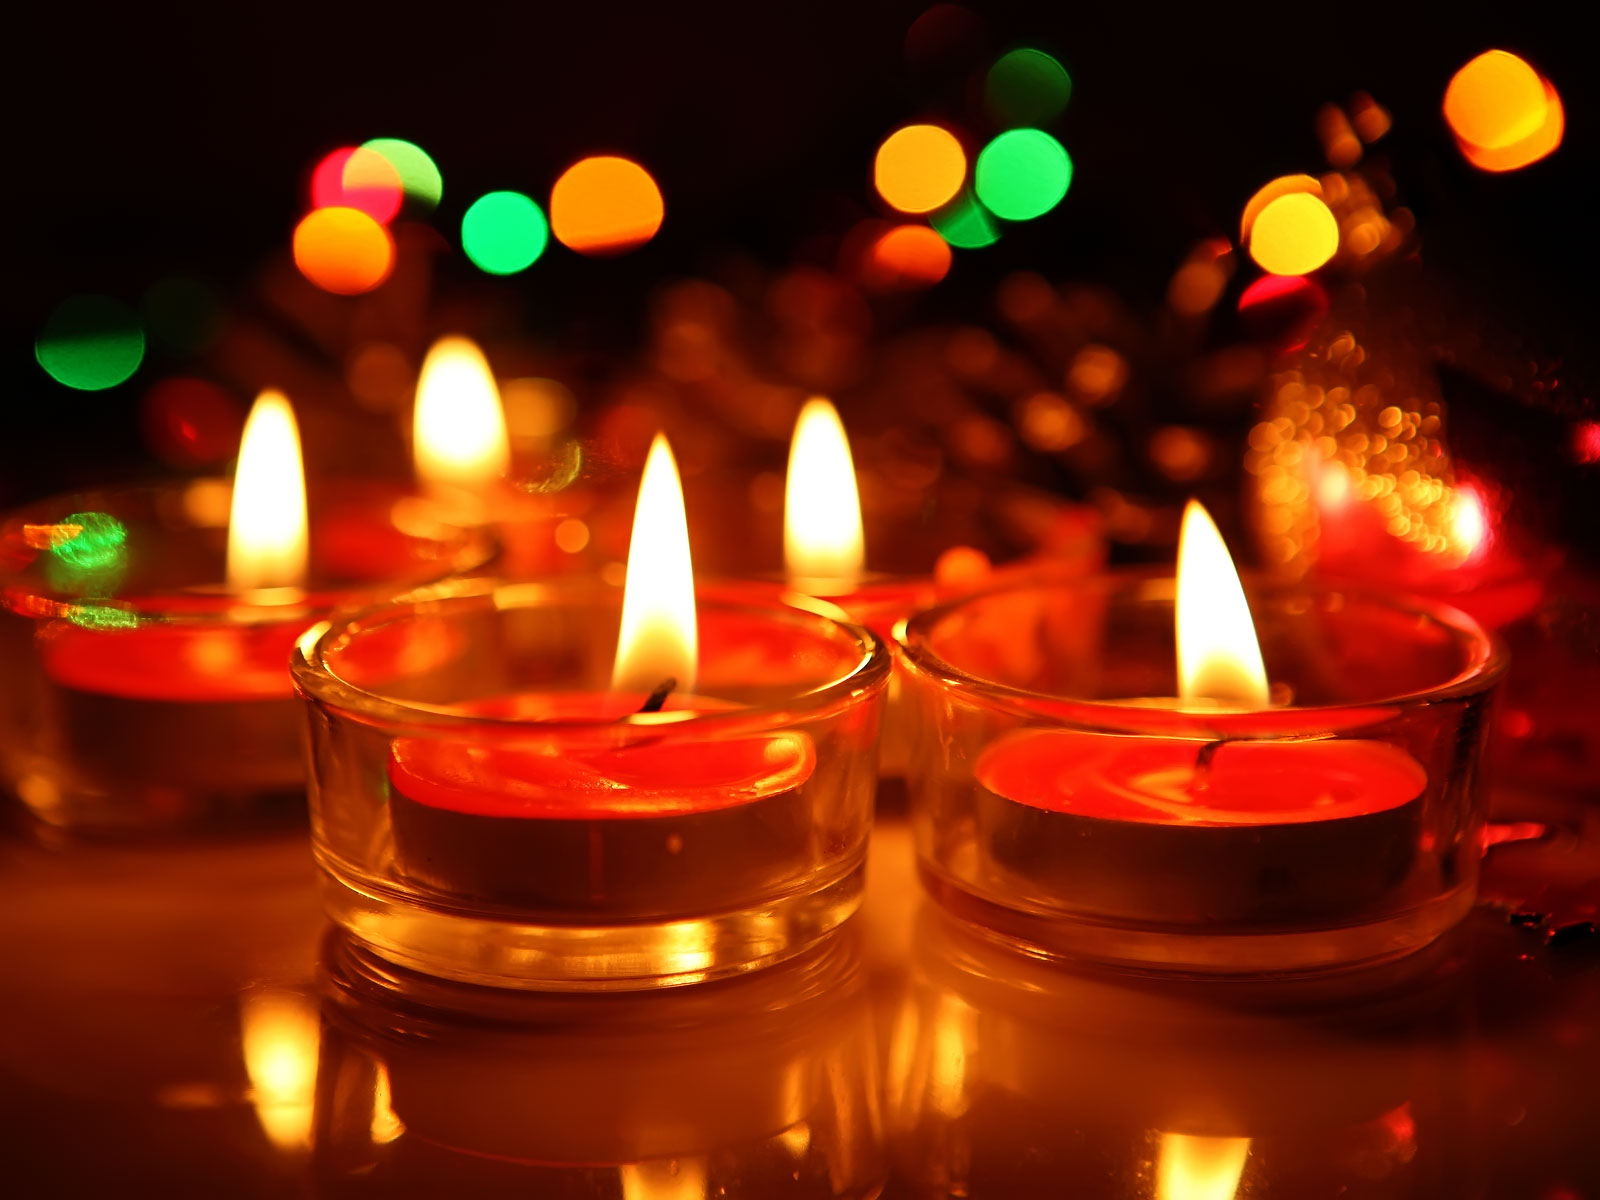 Awesome Diwali Candles Pictures